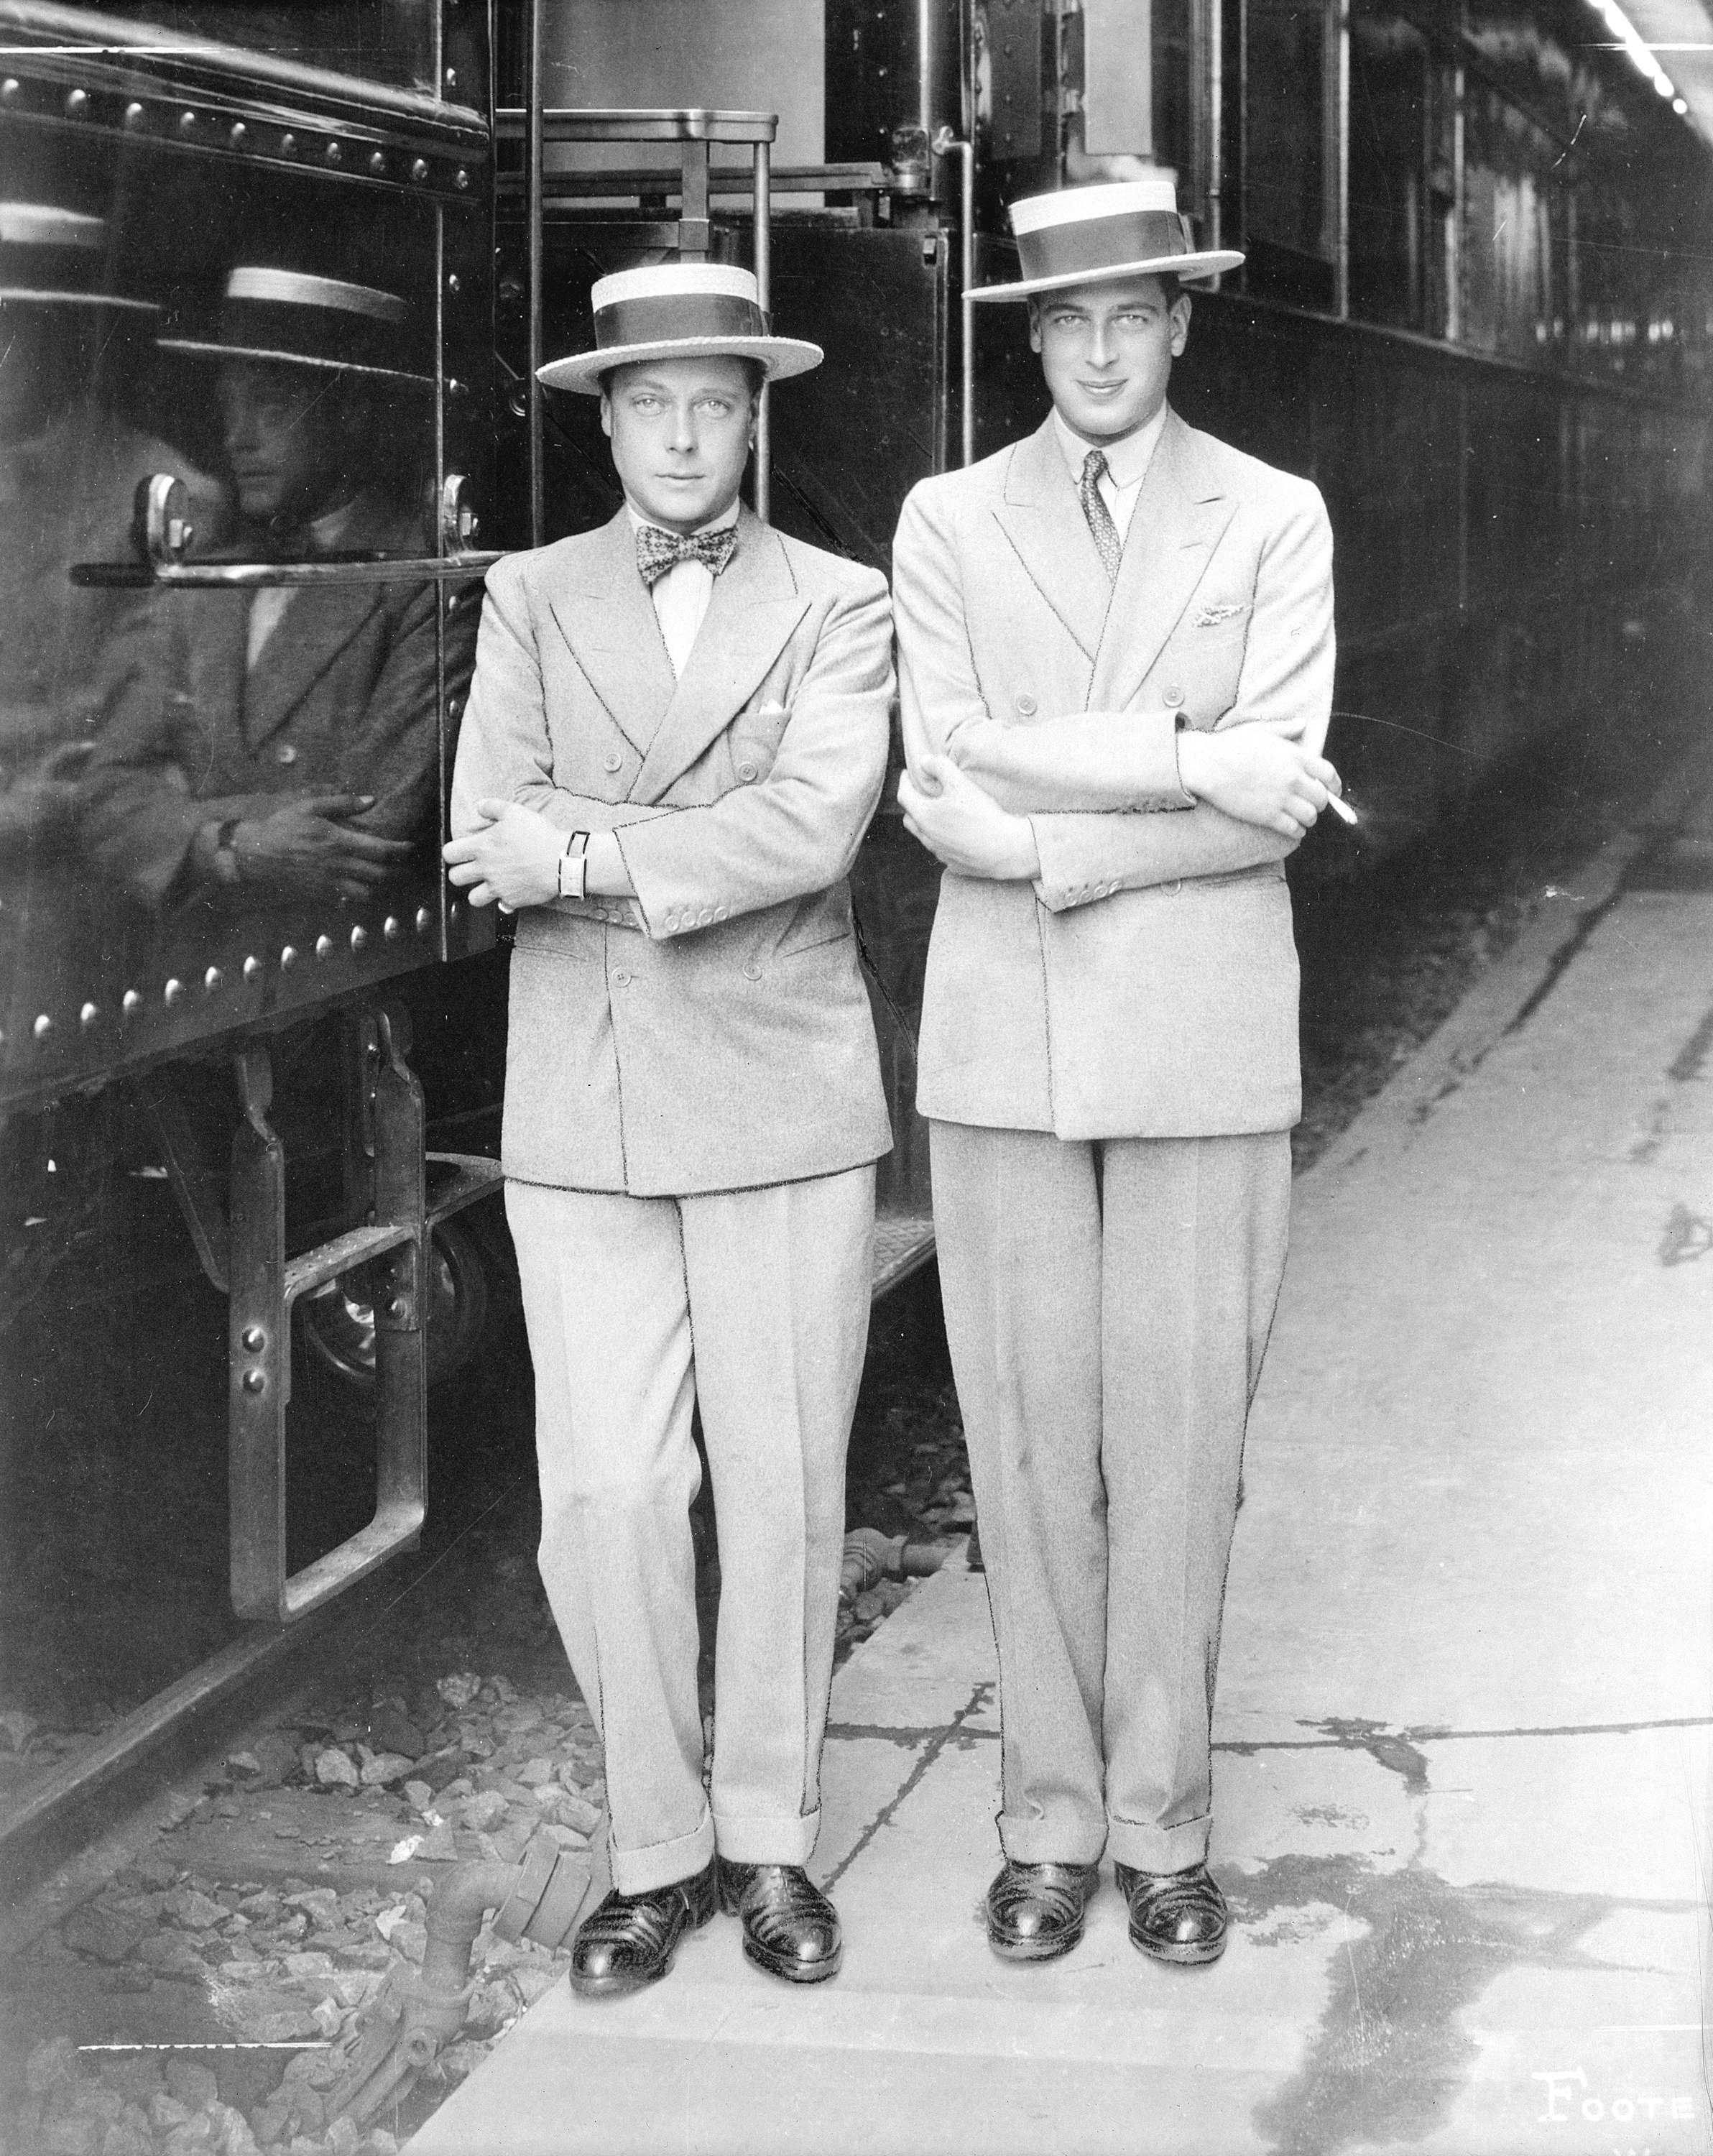 The Prince of Wales (left), with his youngest brother Prince George (right) at the CPR station in Vancouver in 1927 (Public domain)